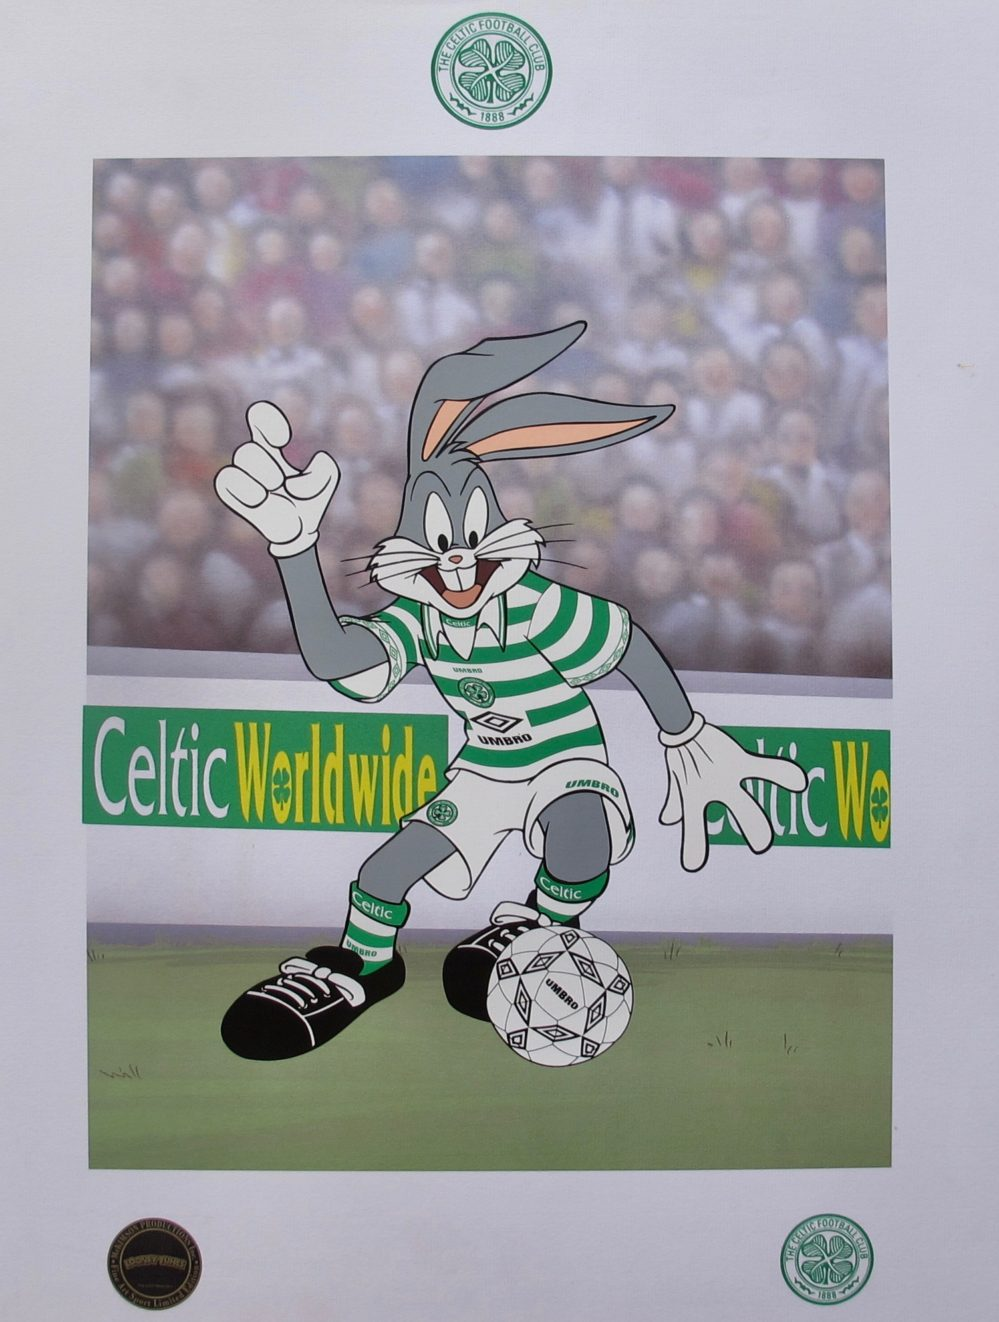 BUGS BUNNY CELTIC SOCCER LOONEY TUNES Limited Edition Art Lithograph Football